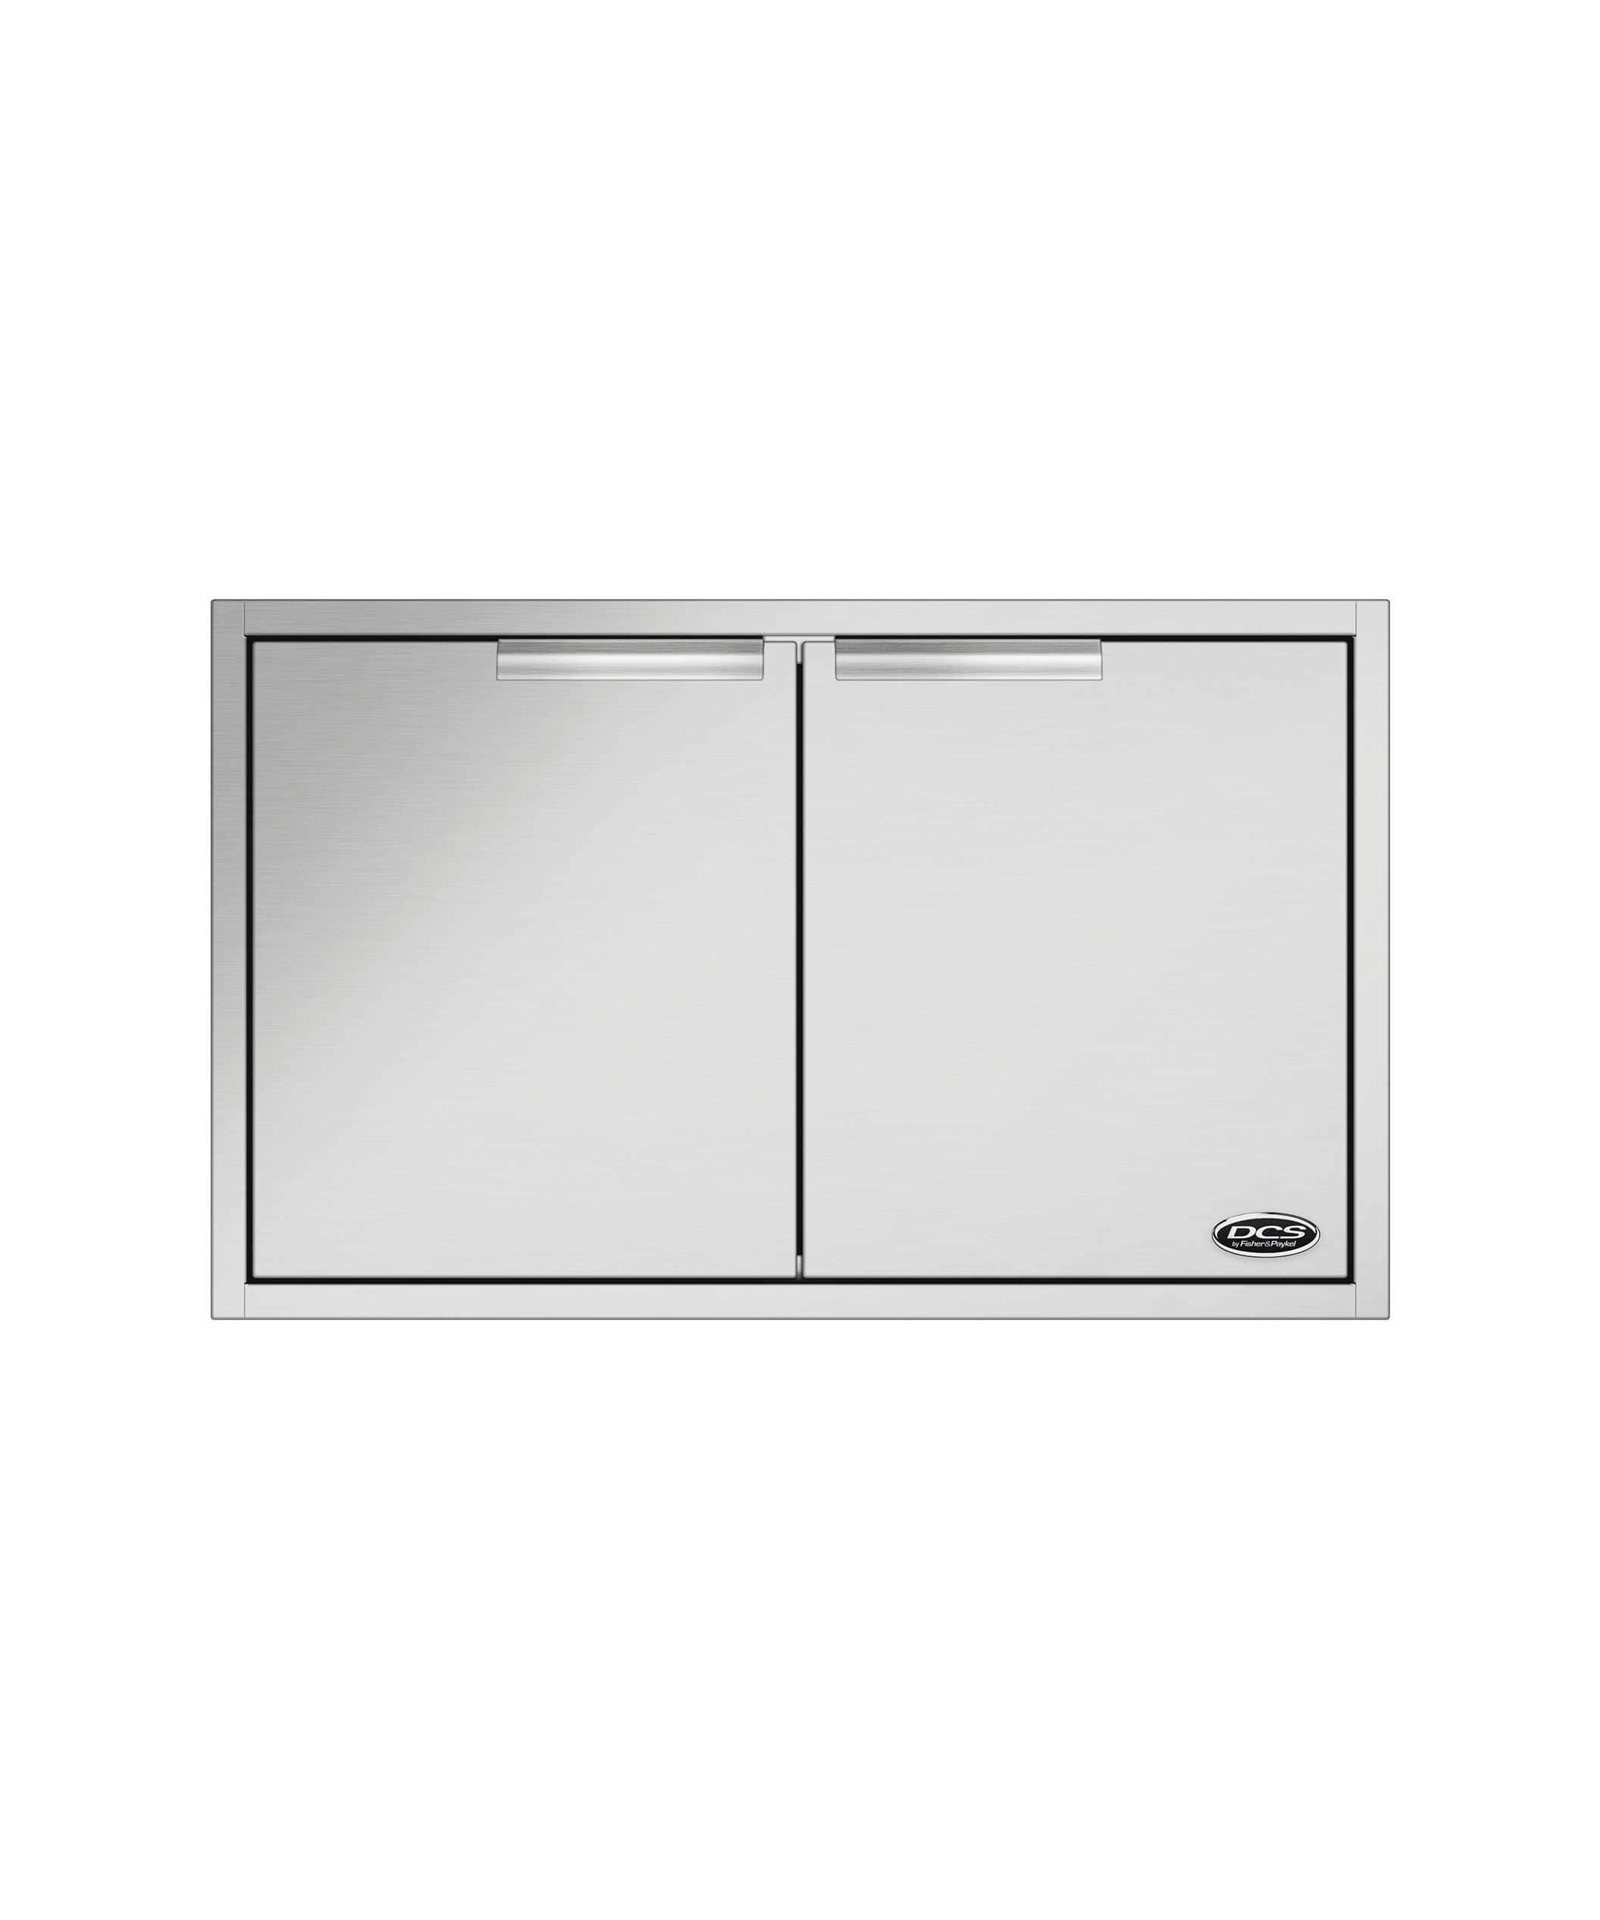 Model: ADN1-20X36 | DCS Access Doors Built-in